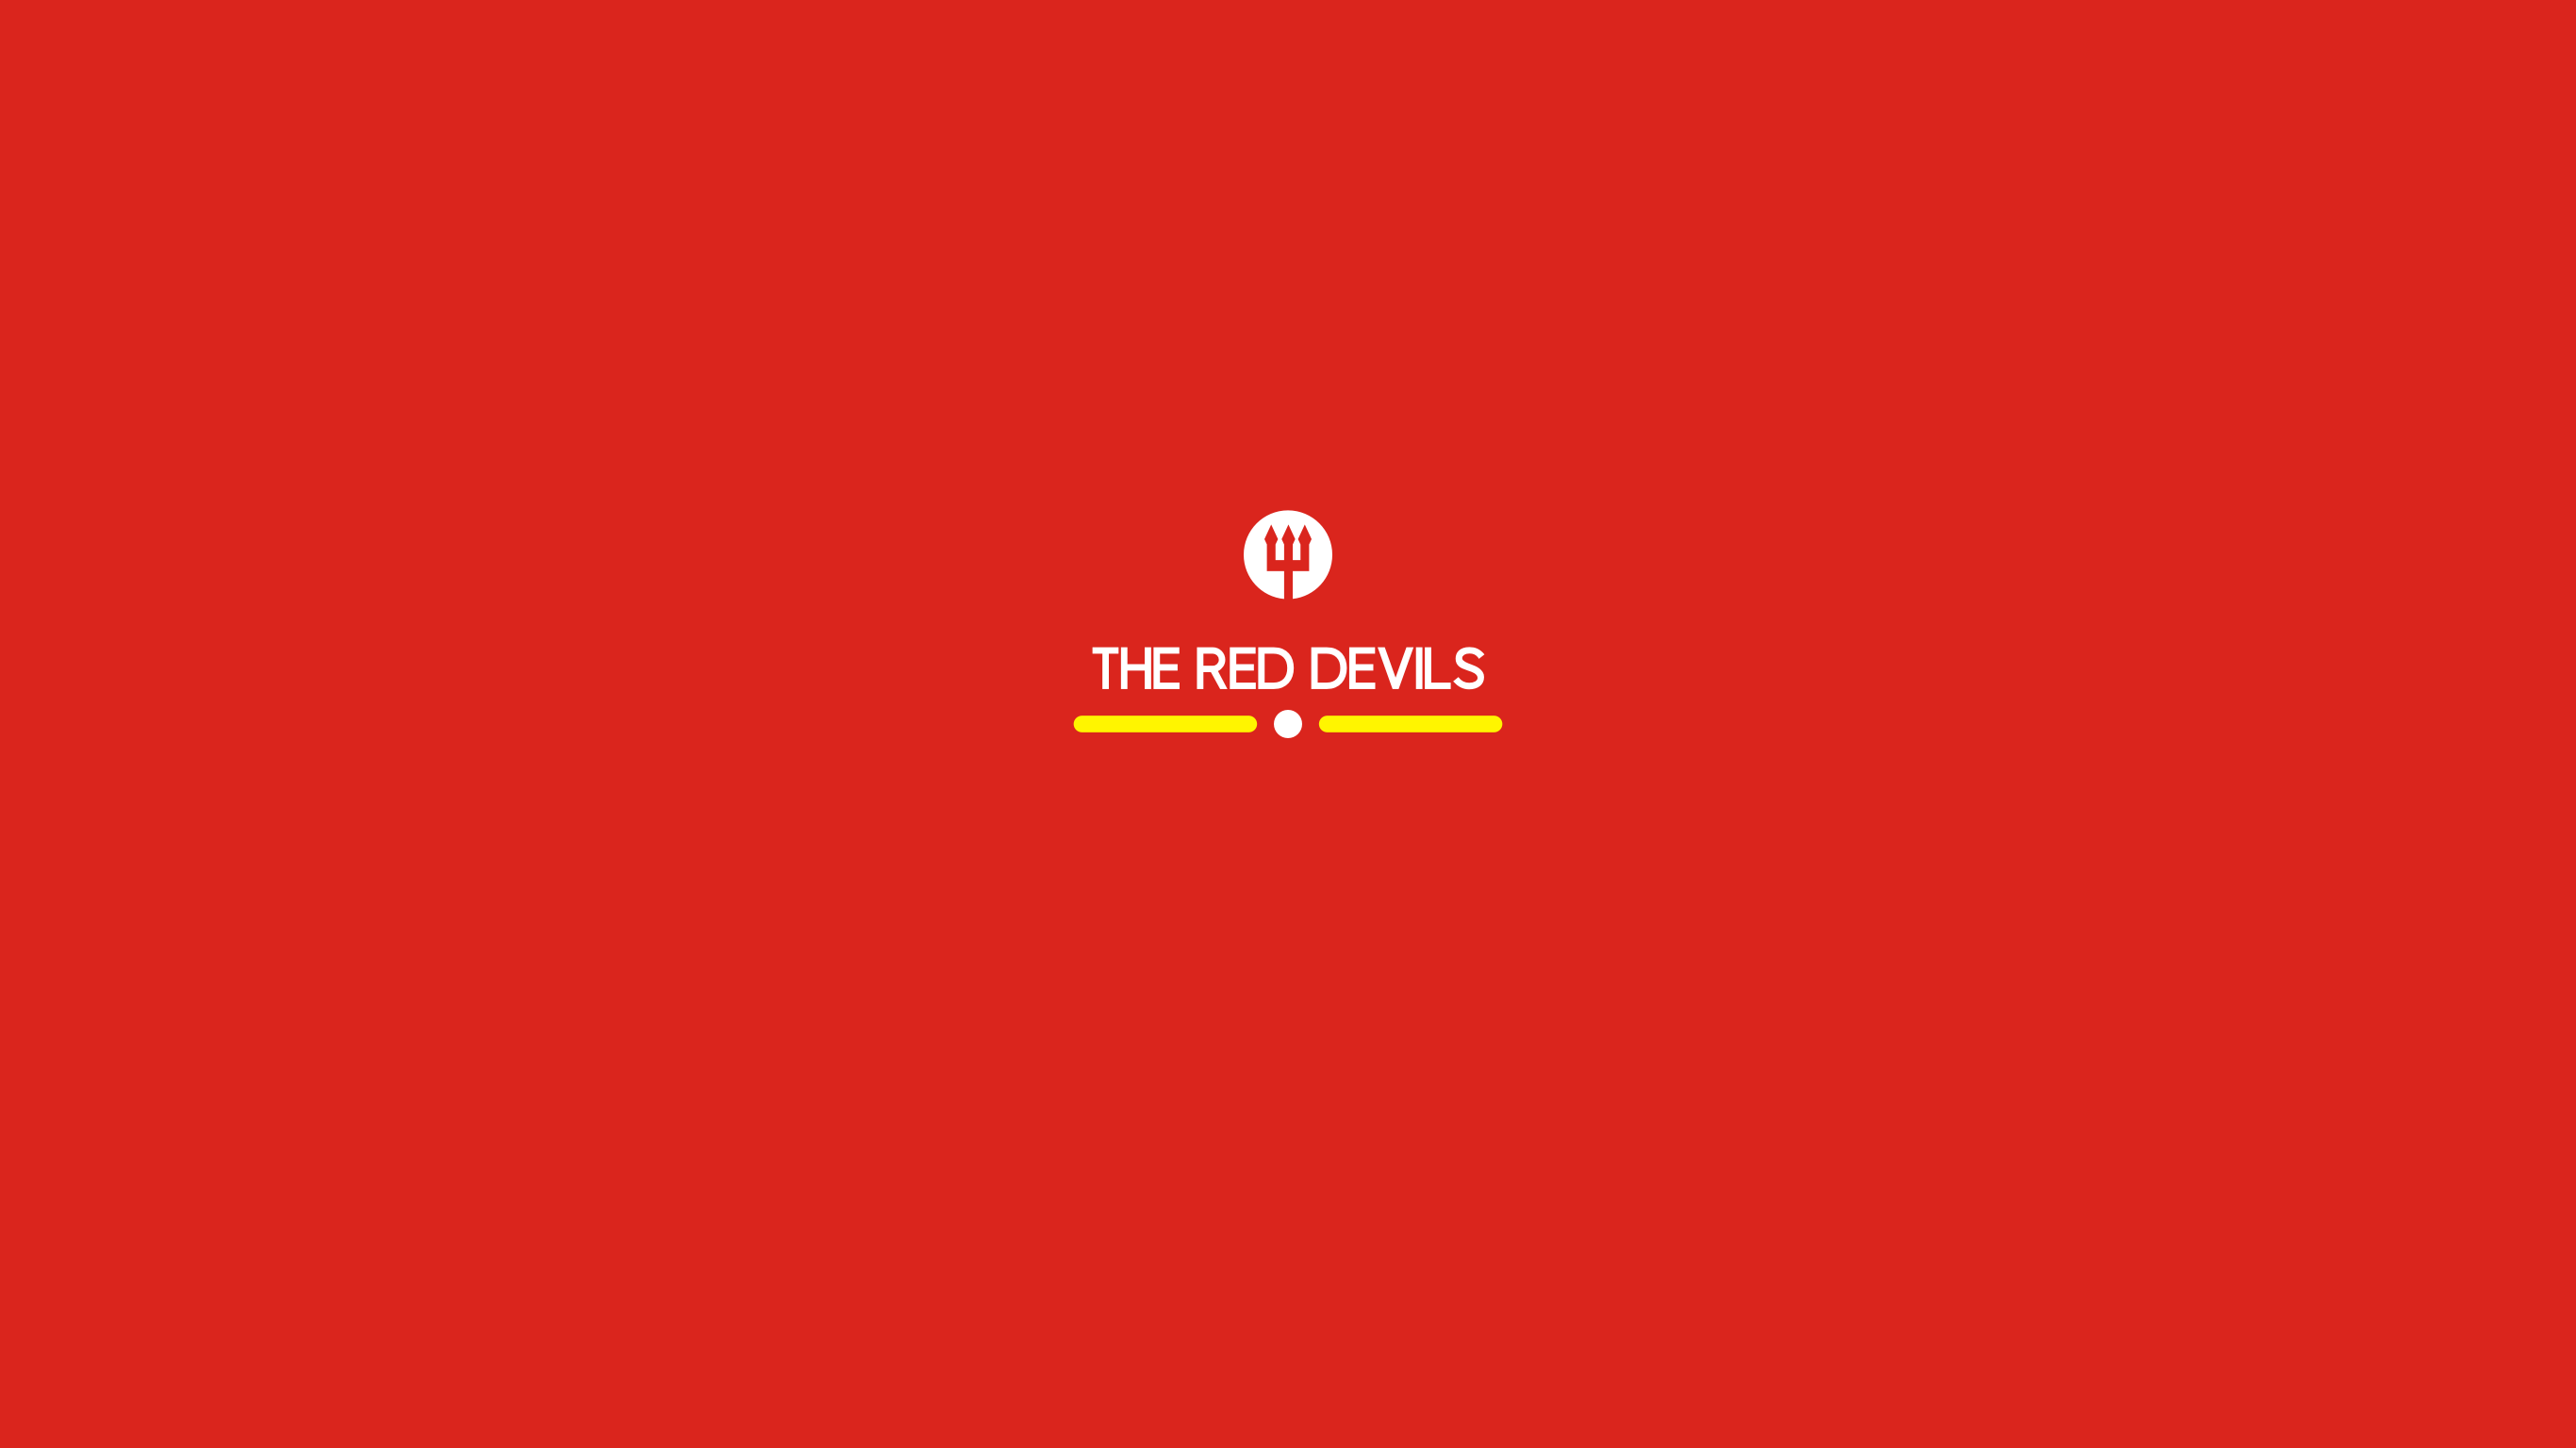 The Red Devils Simple Manchester United Wallpaper By Hamzah Zein